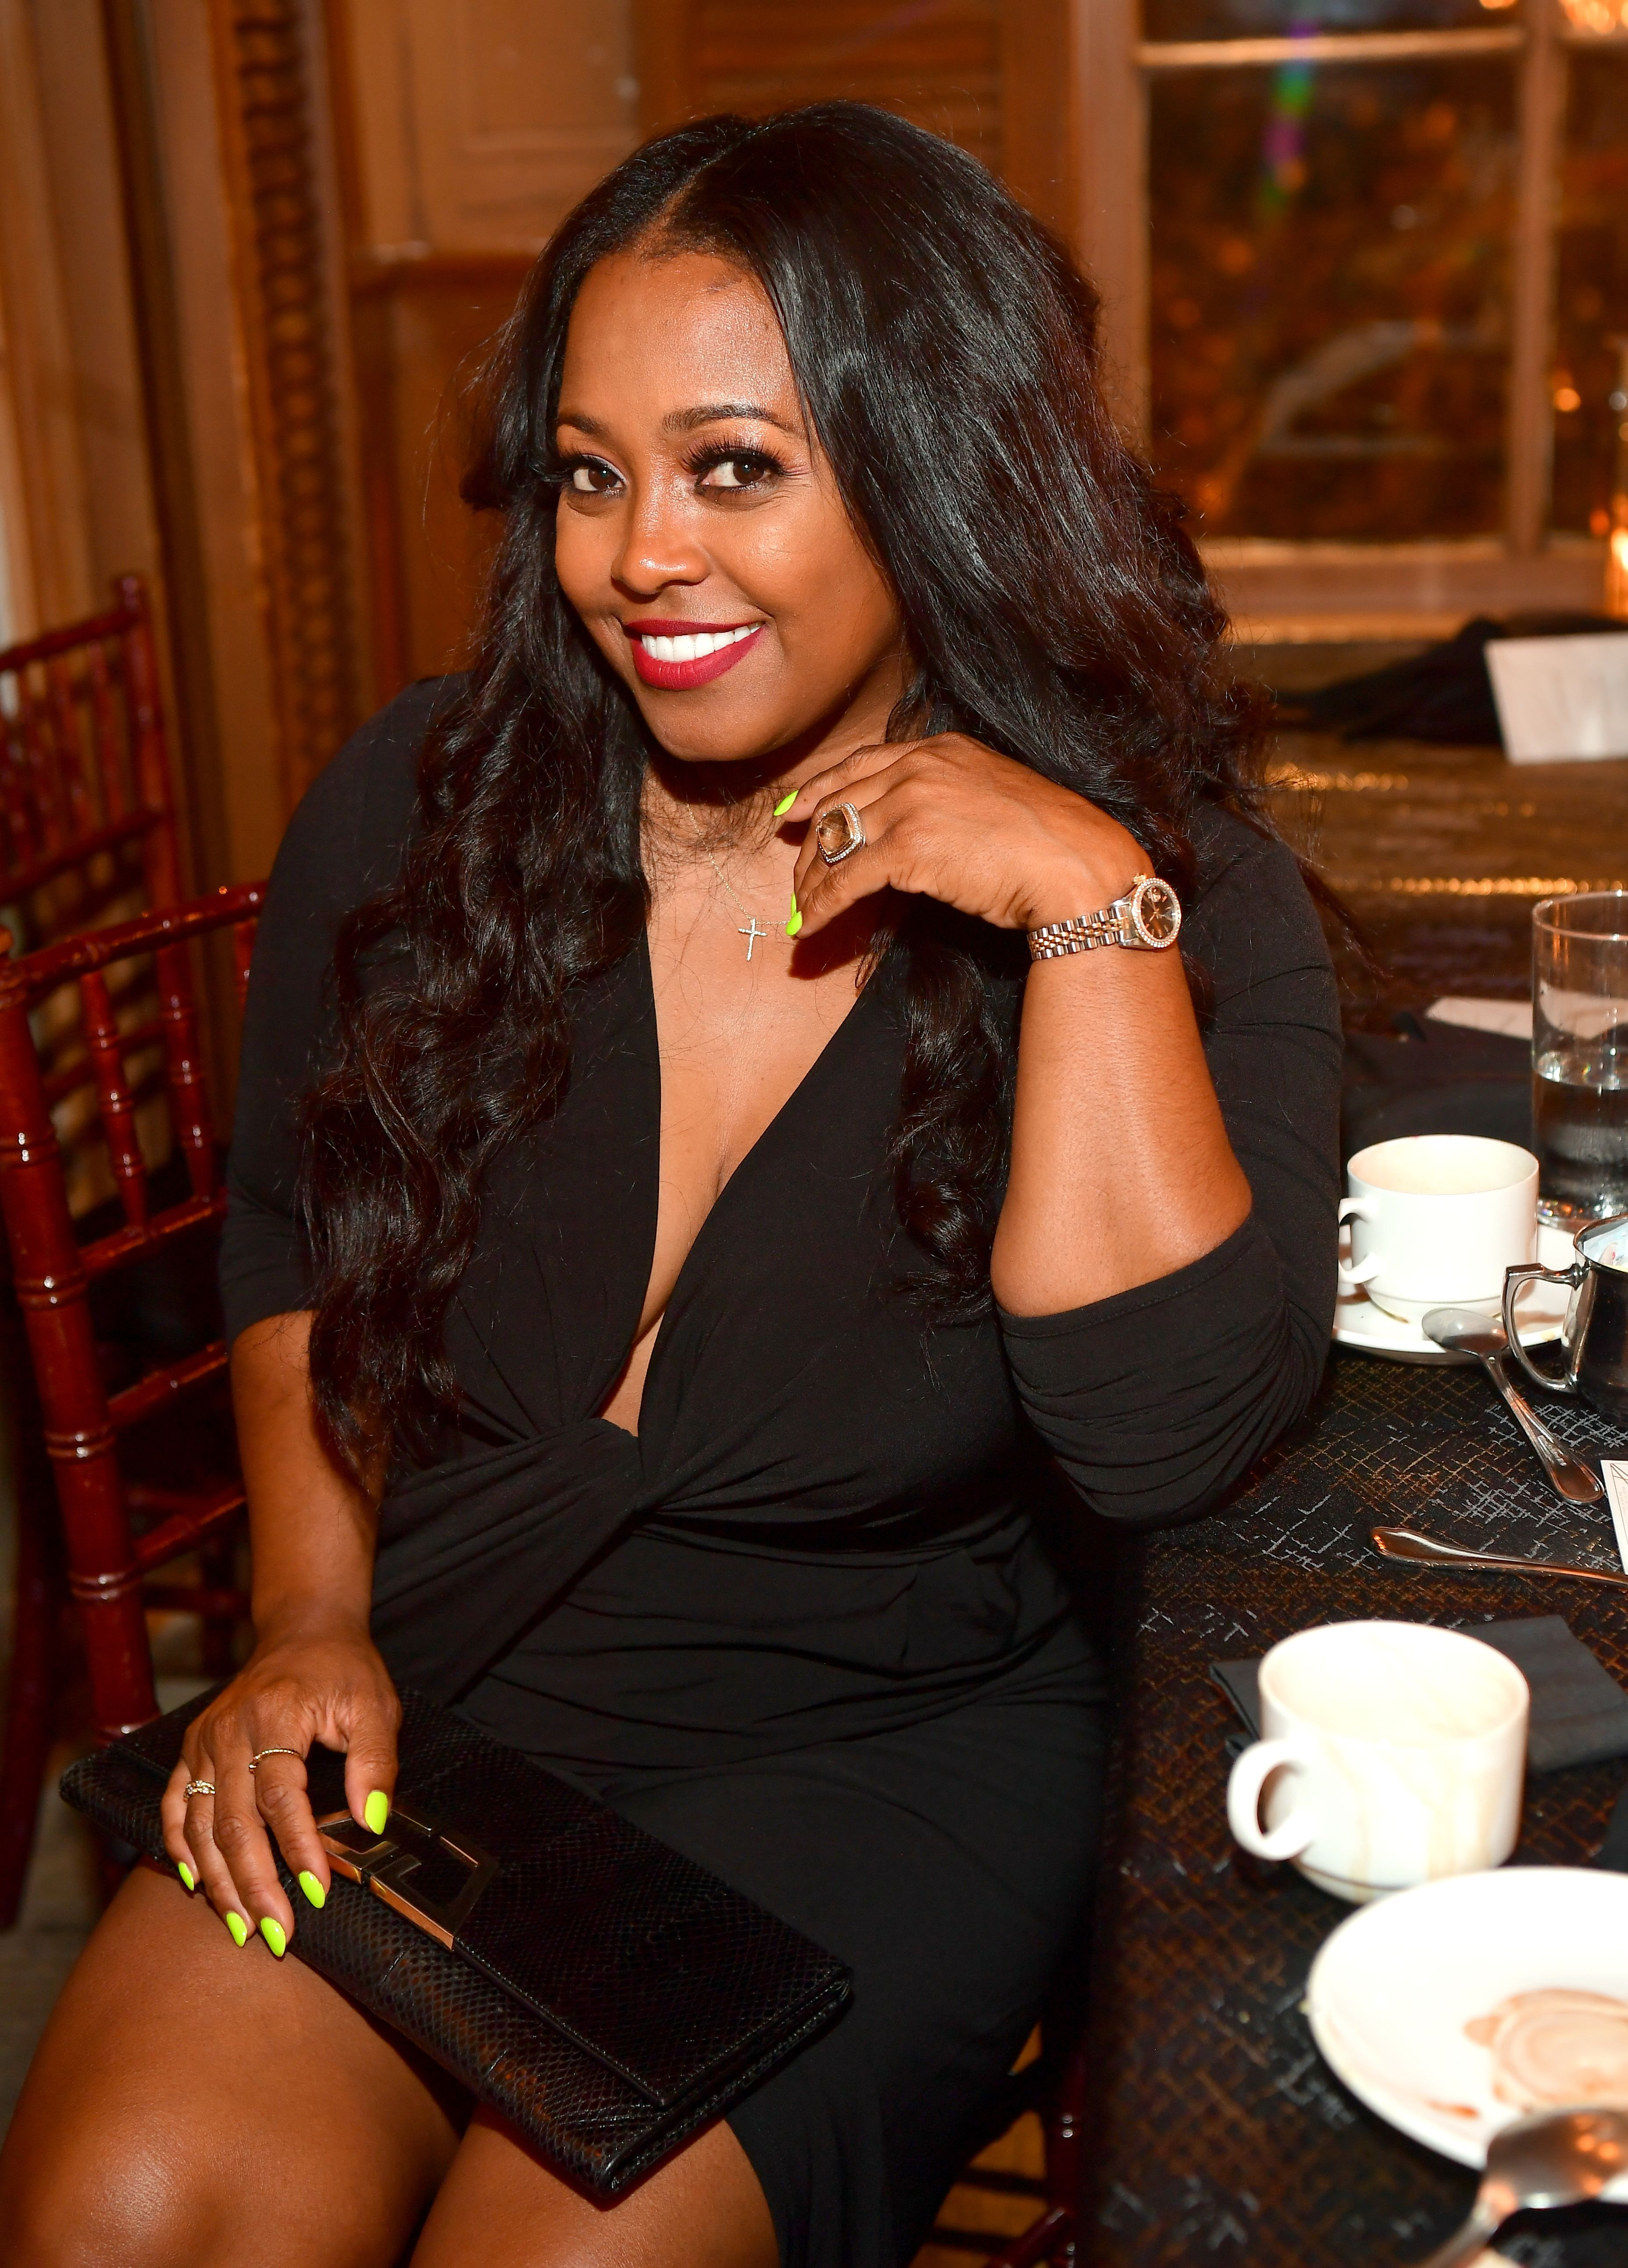 Keshia Knight Pulliam attends A toast Honoring Larry Morrow at Emeril's Delmonico on July 5, 2019 in New Orleans, Louisiana. | Source: Getty Images